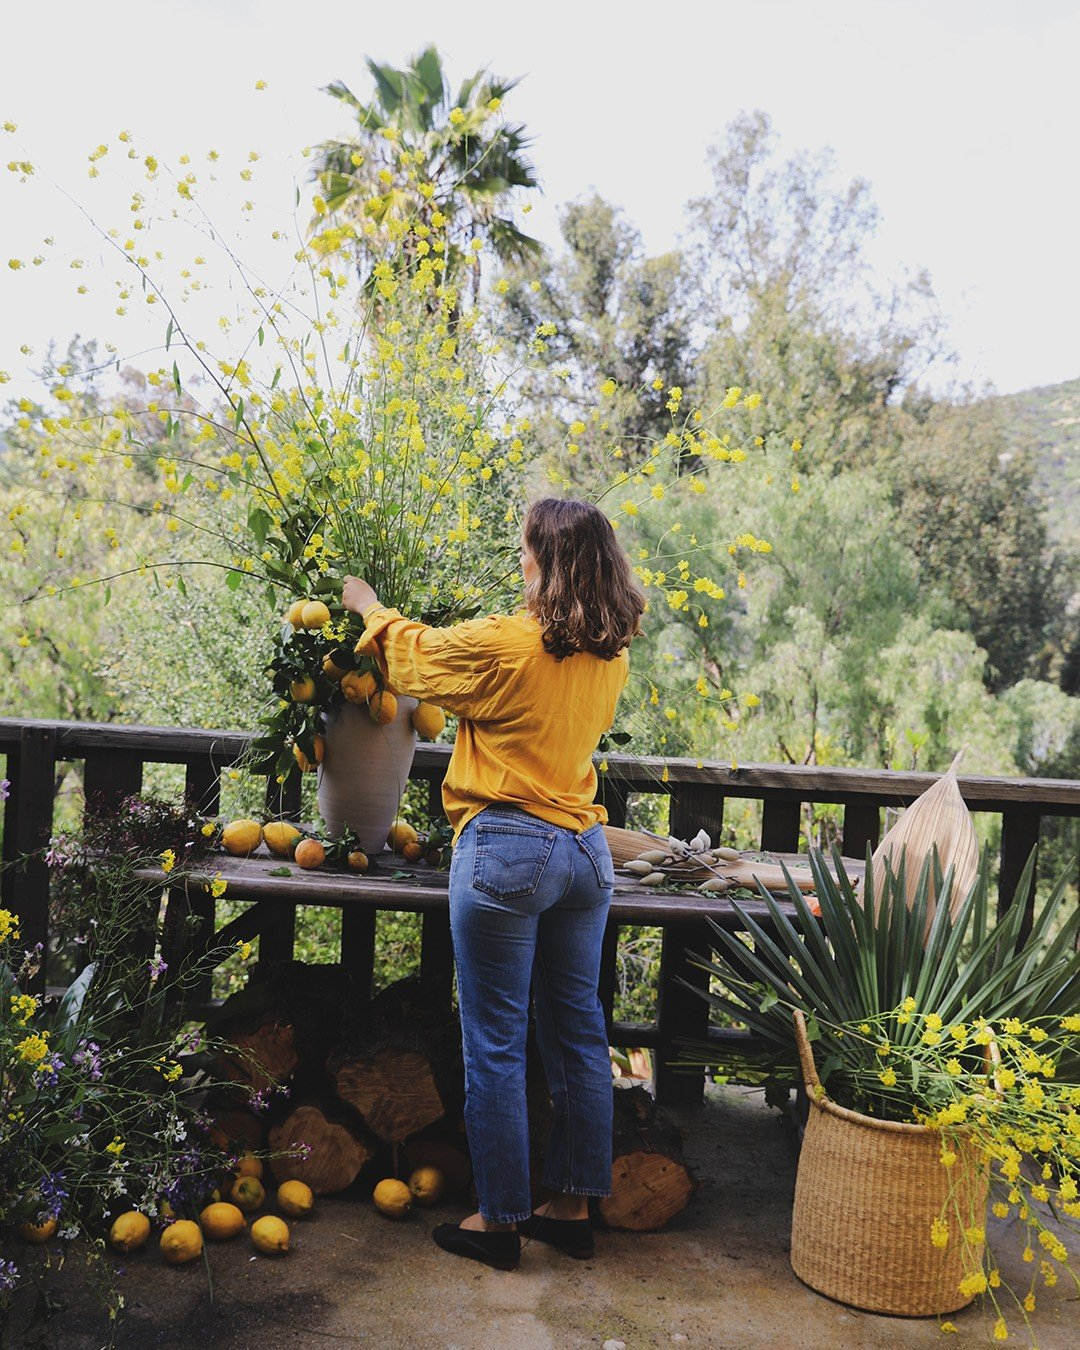 Moreno-Bunge at work on an arrangement of foraged wild mustard branches mixed with local citrus